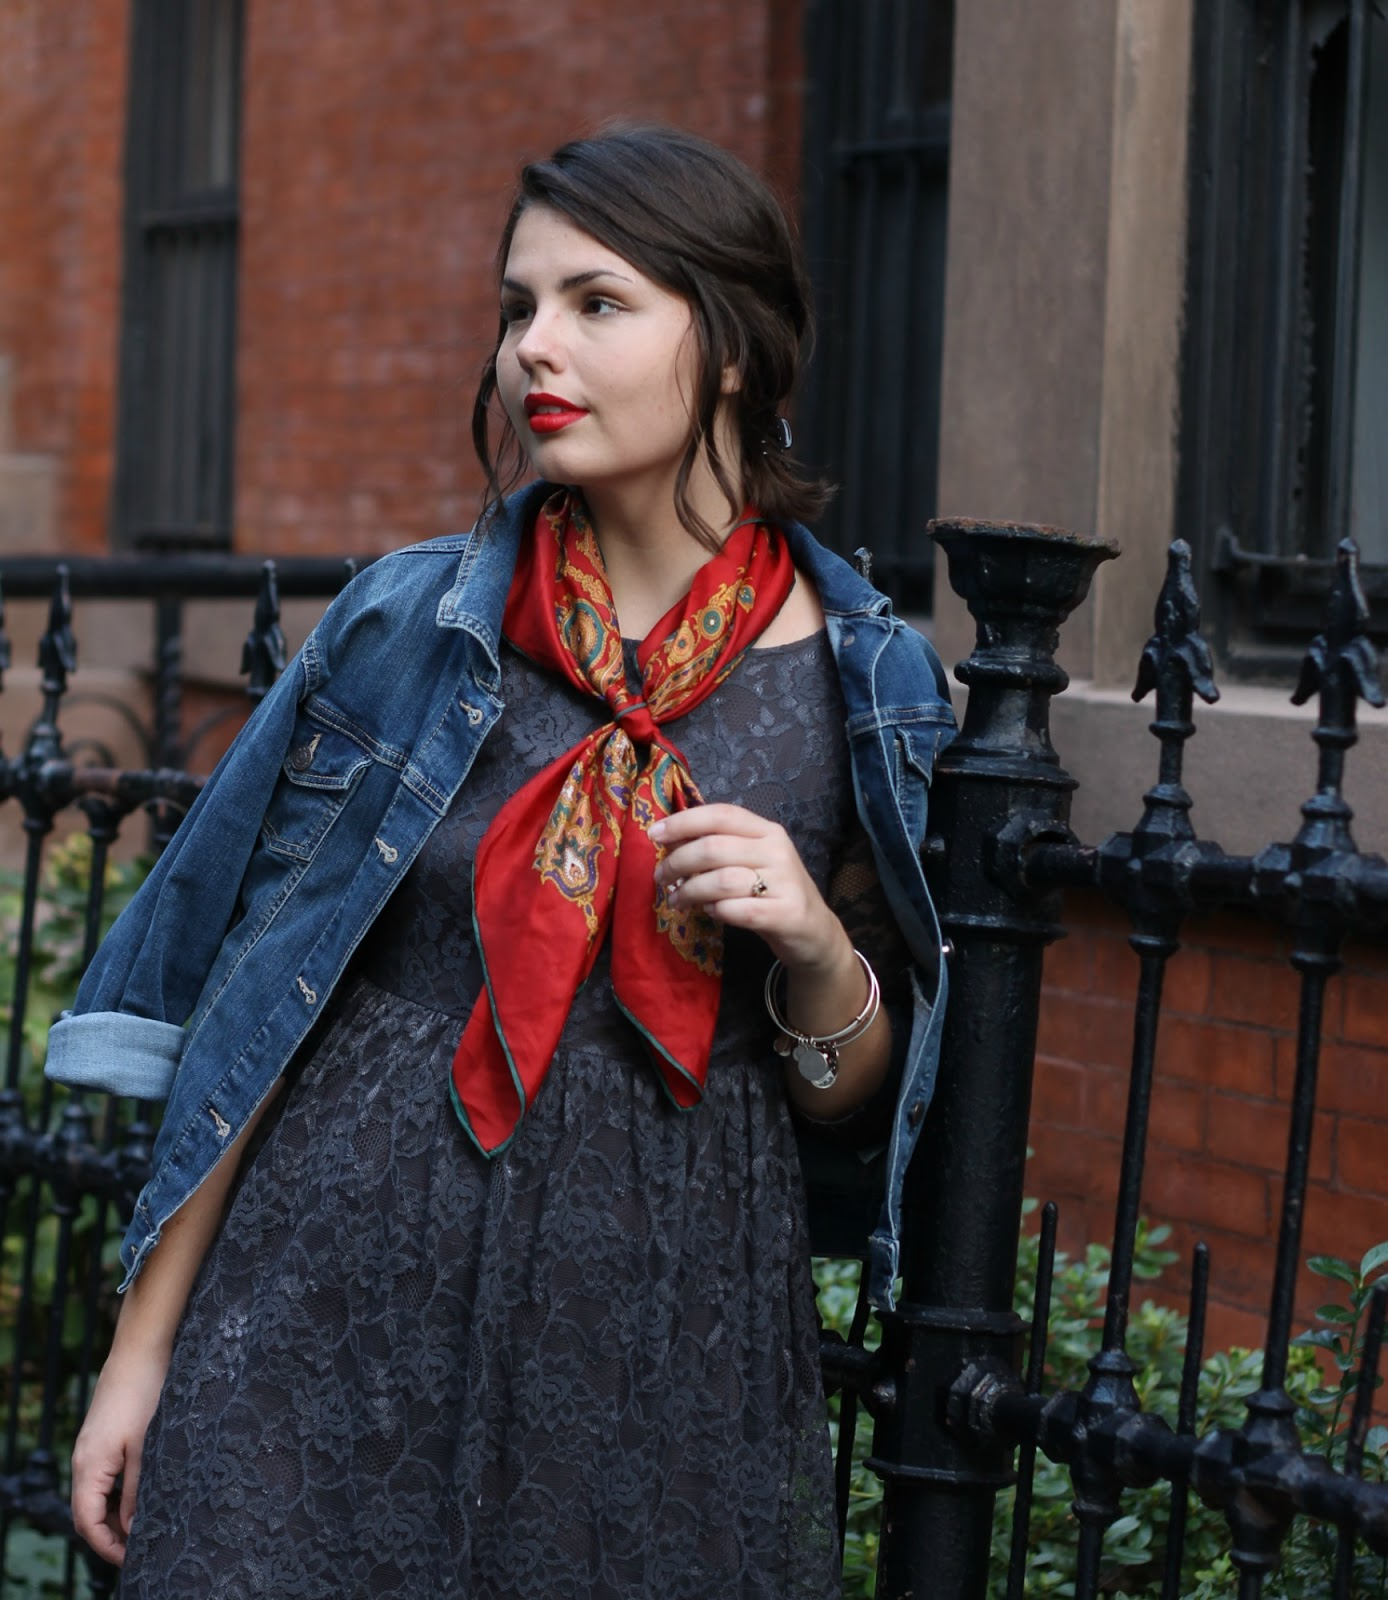 Brooklyn Street Style | Lauren Pfieffer